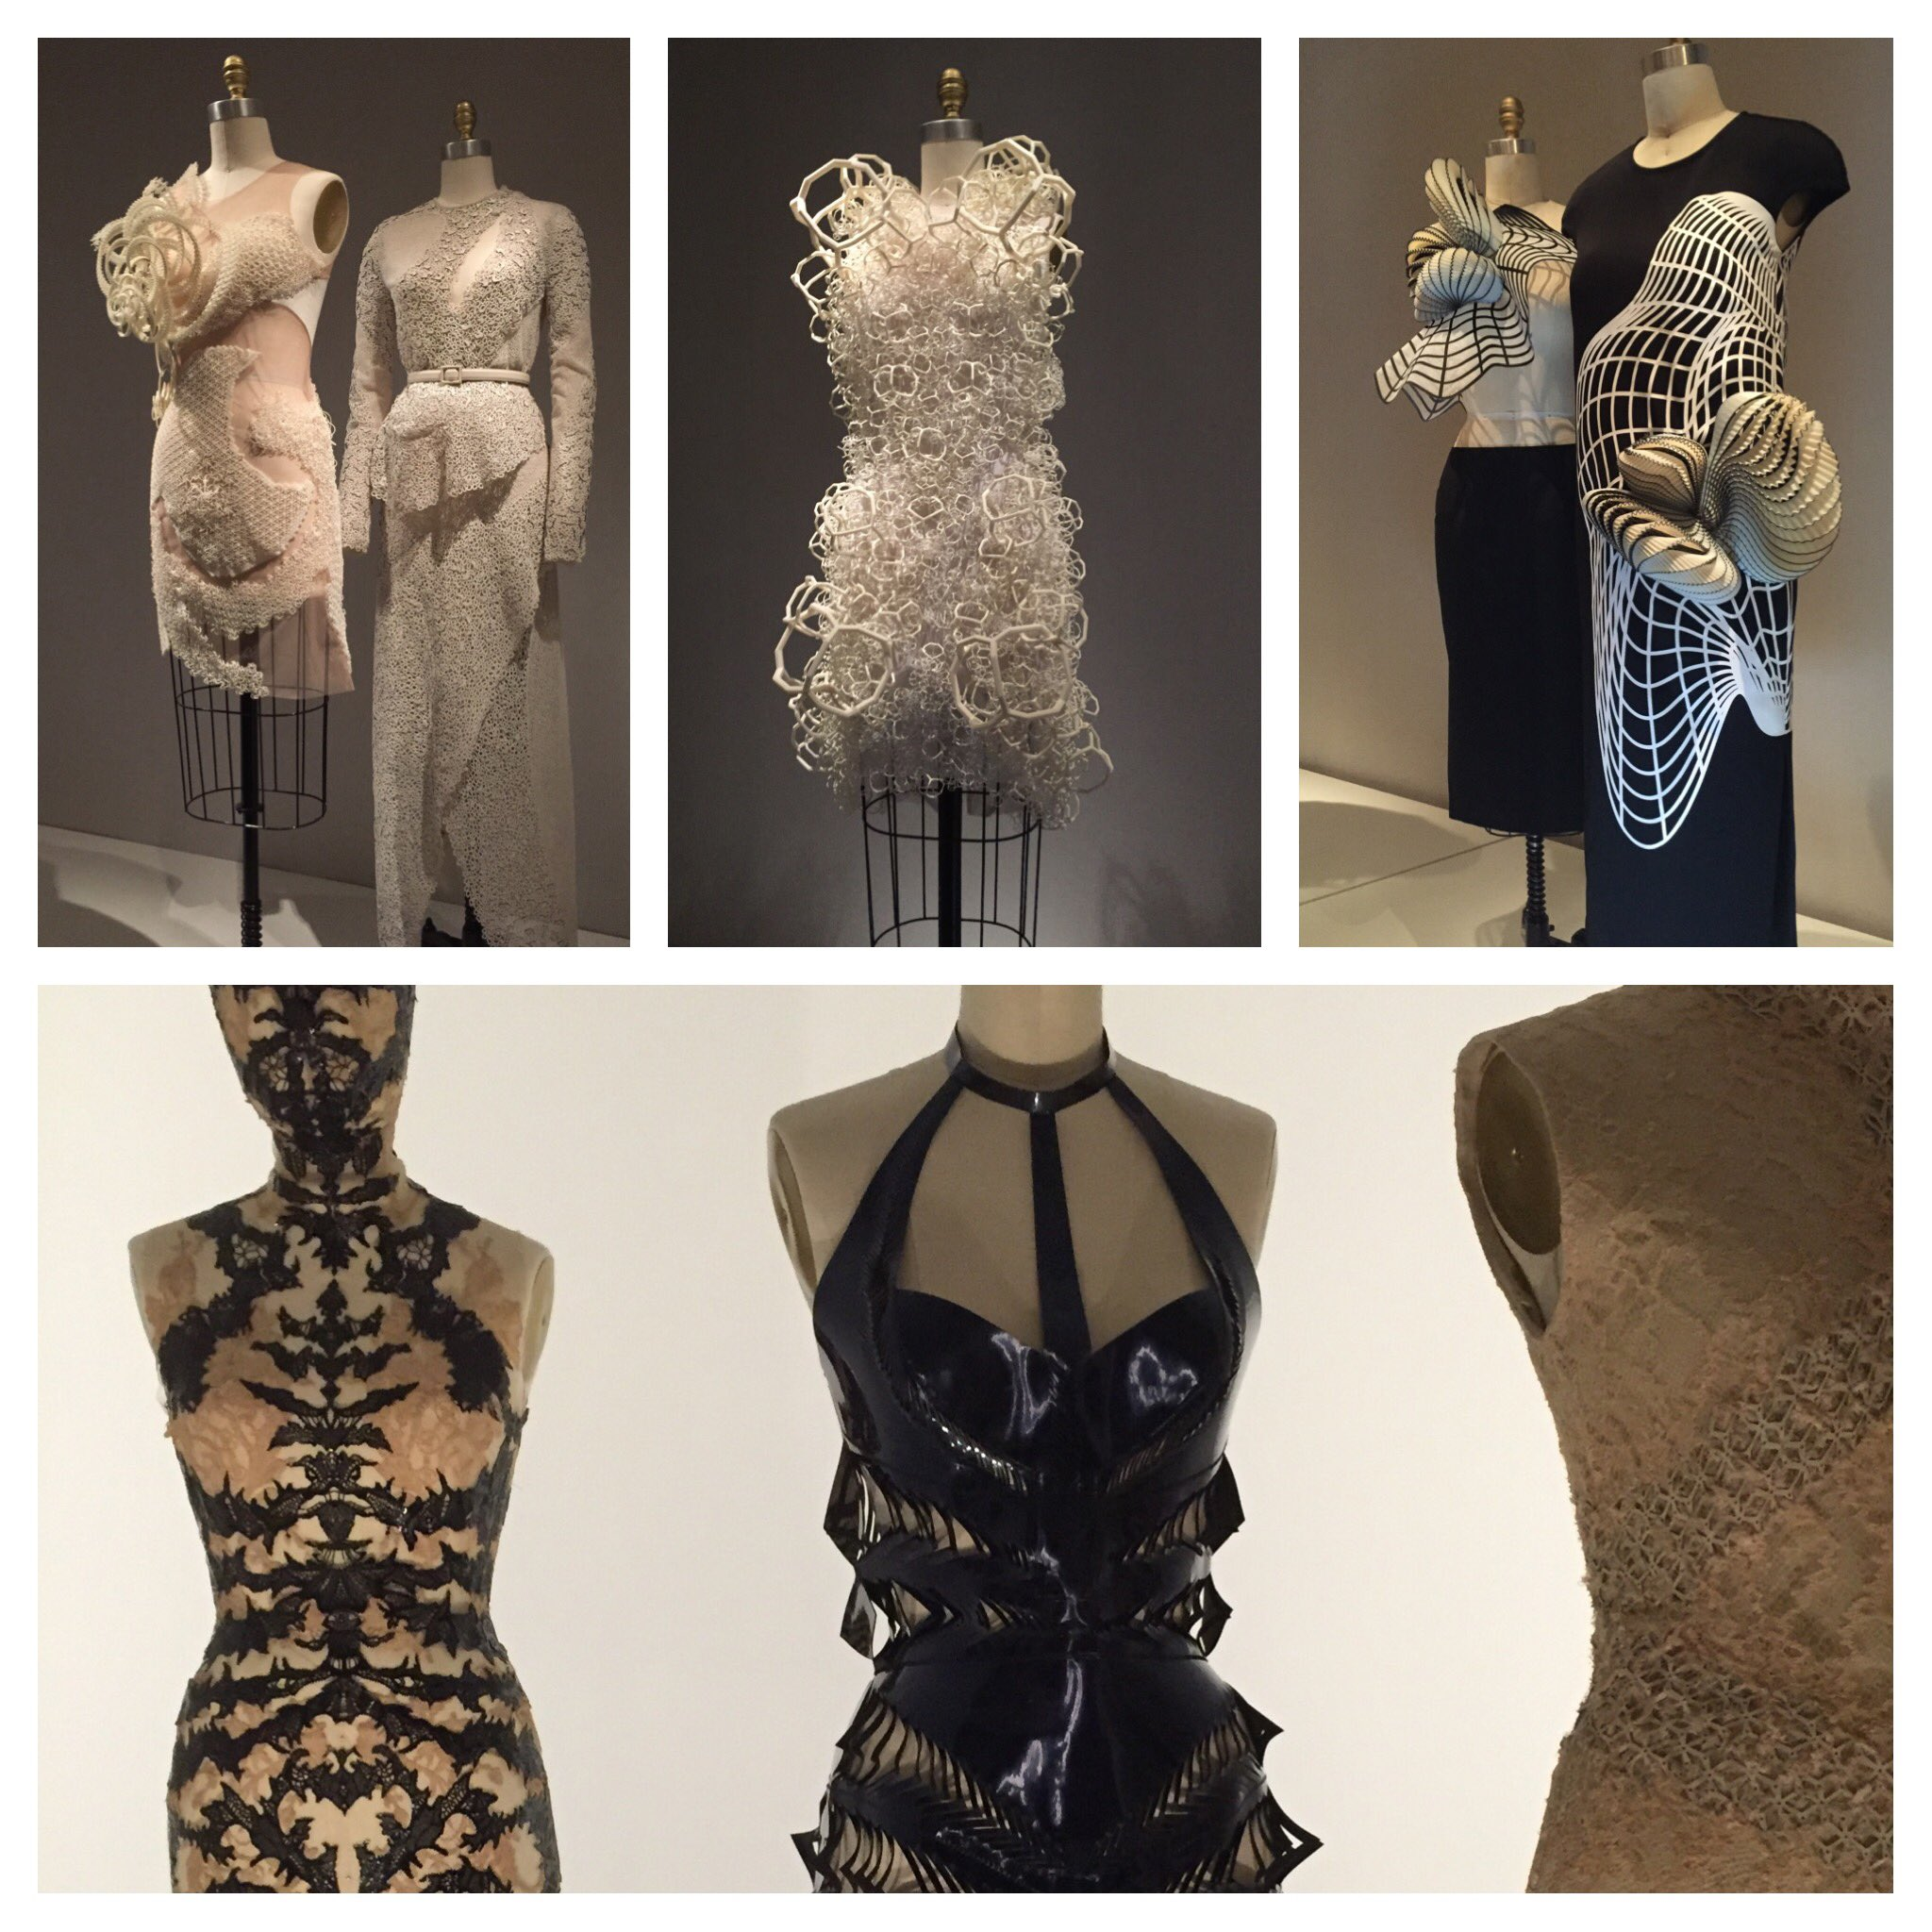 Great exhibition @metmuseum on #fashion and #technology like #3dprinting #lasercut #FashionTech https://t.co/cSj7RgSHJO